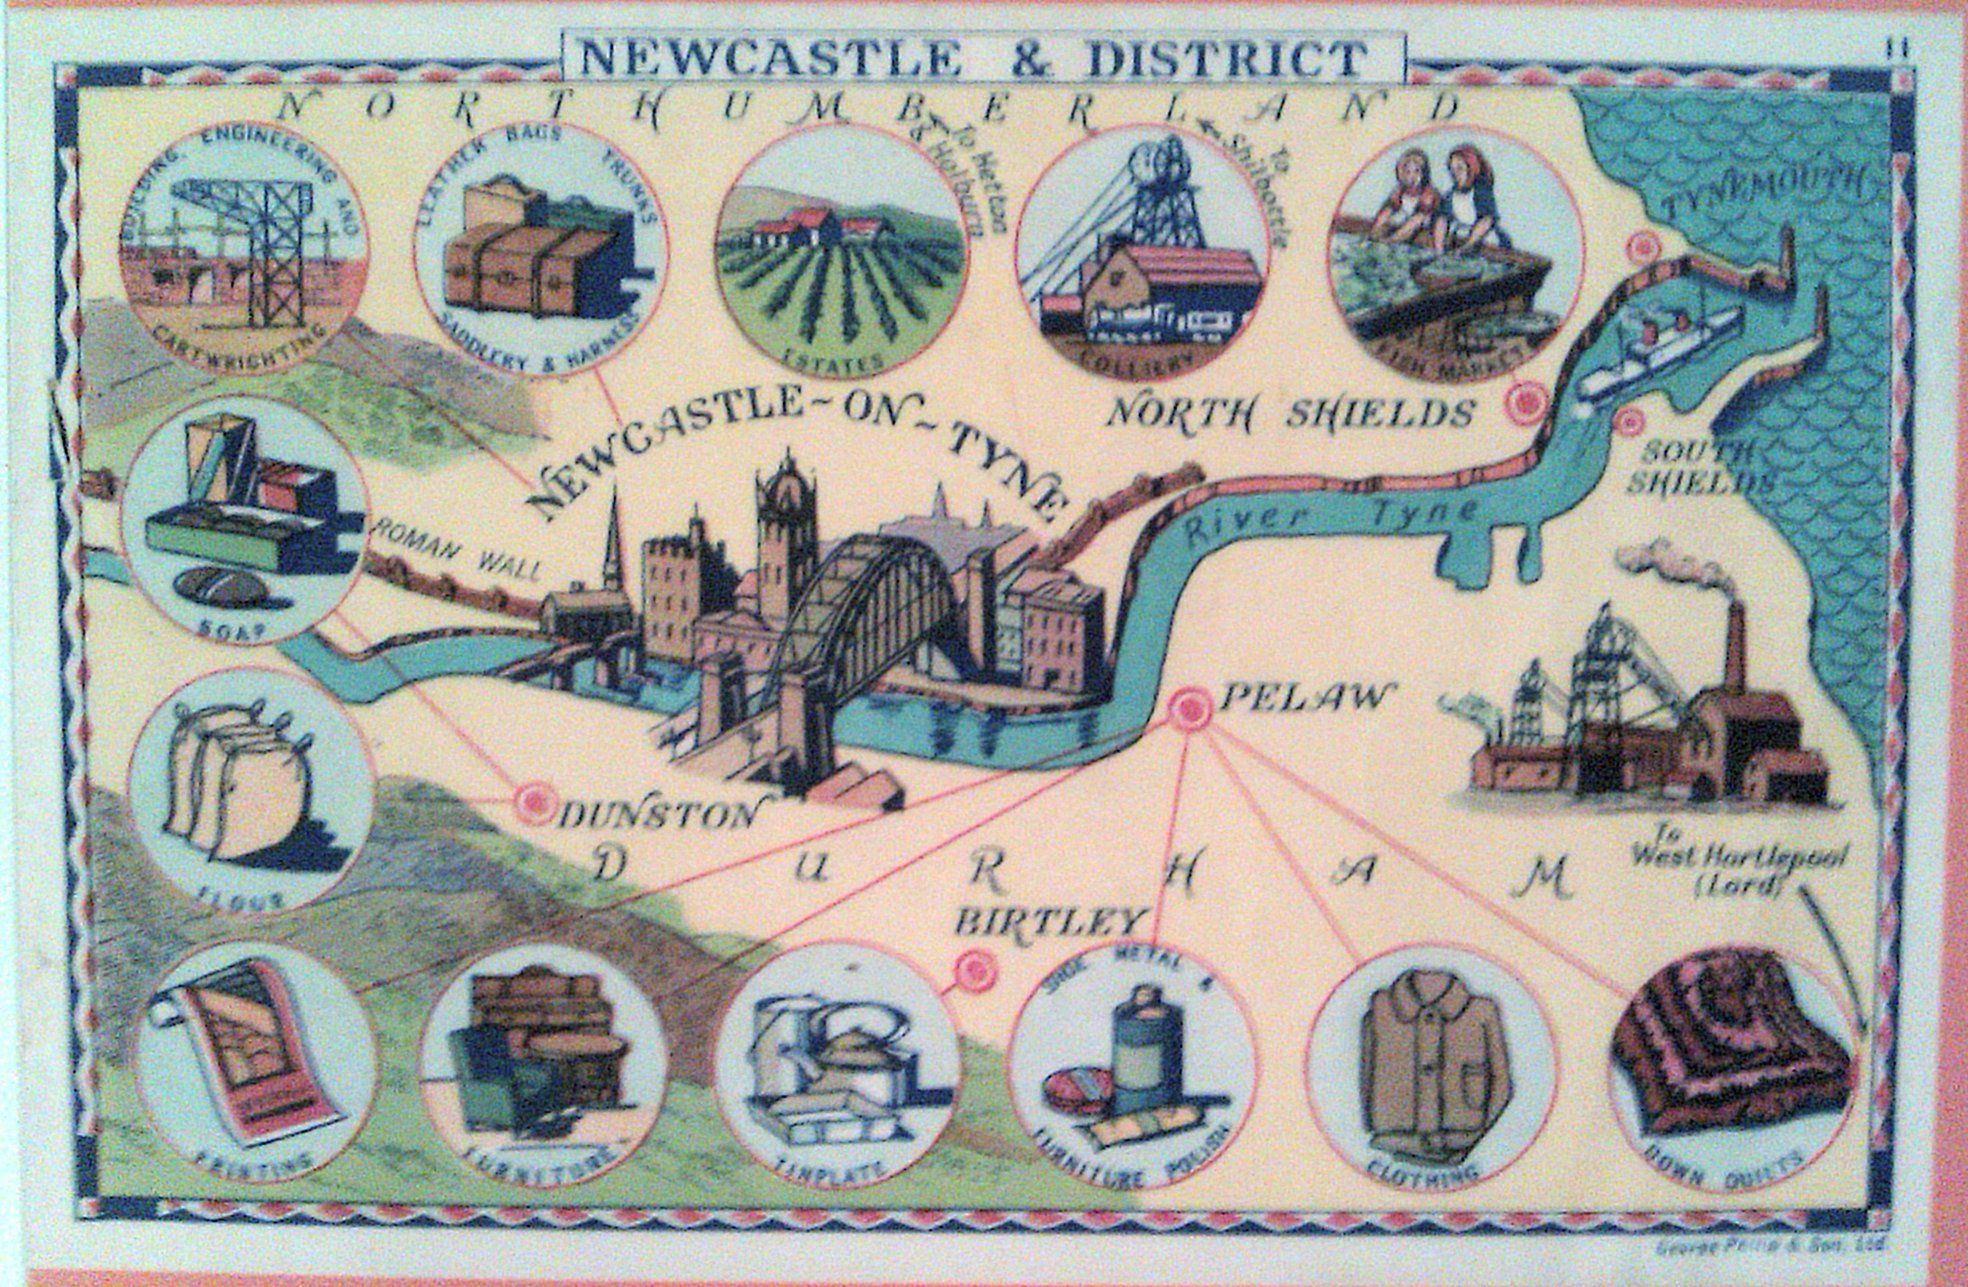 When Pelaw workers were at the centre of the world The CWS in